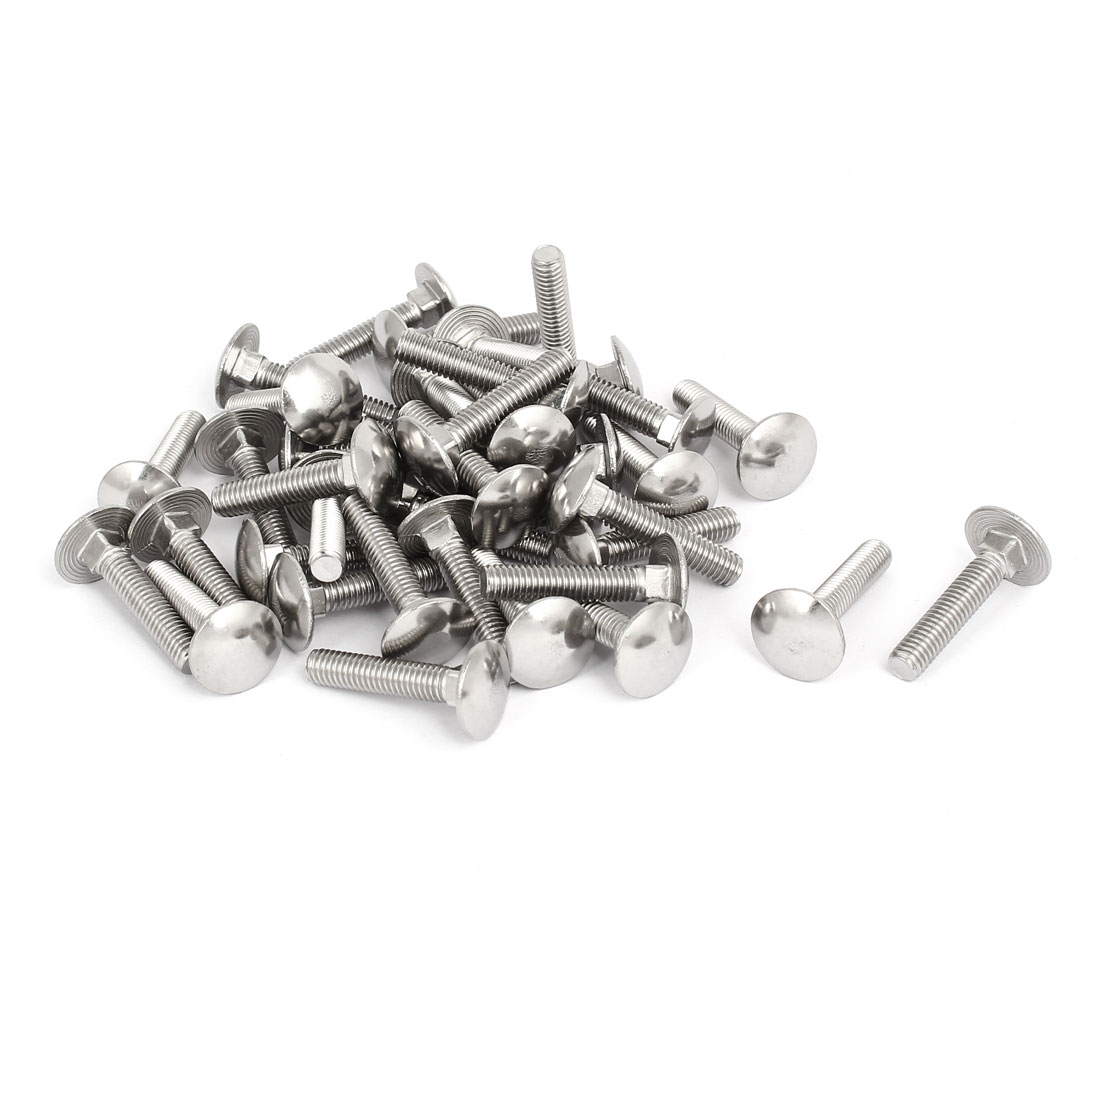 M6x30mm 304 Stainless Steel Fully Thread Square Neck Carriage Bolts DIN603 40pcs